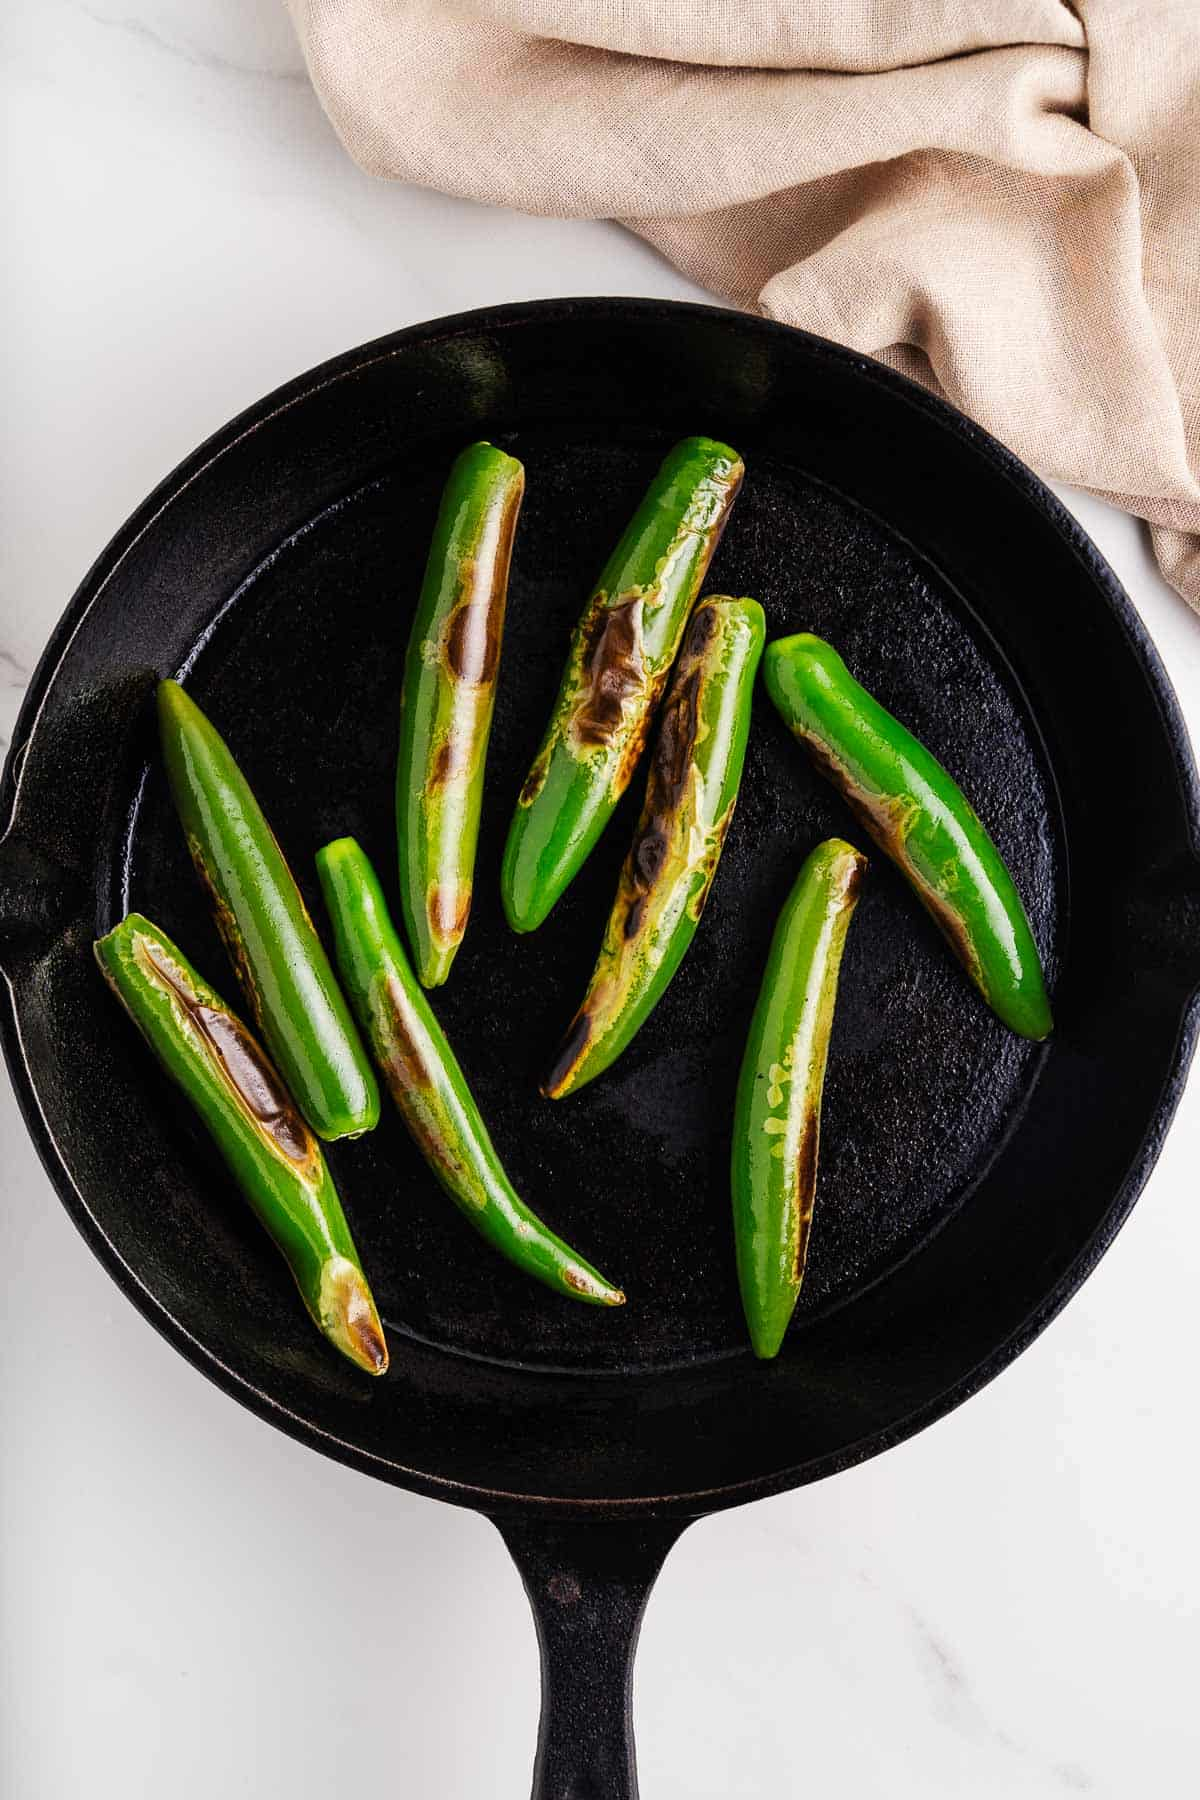 Blistered Serrano Chiles in a Skillet